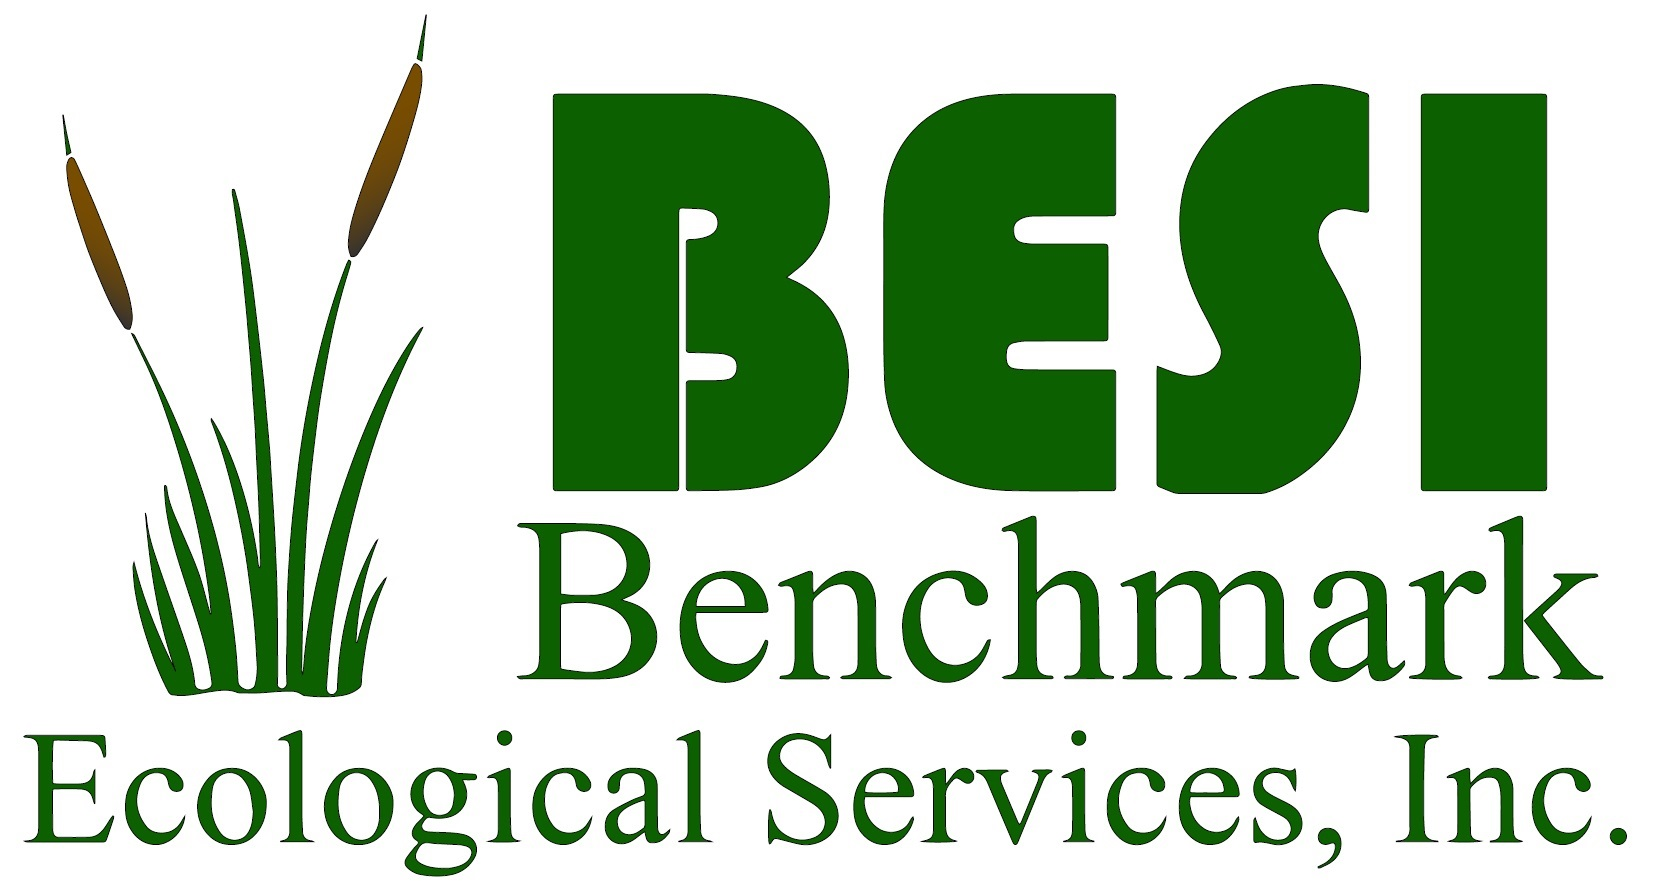 Benchmark-Ecological-Services-Logo